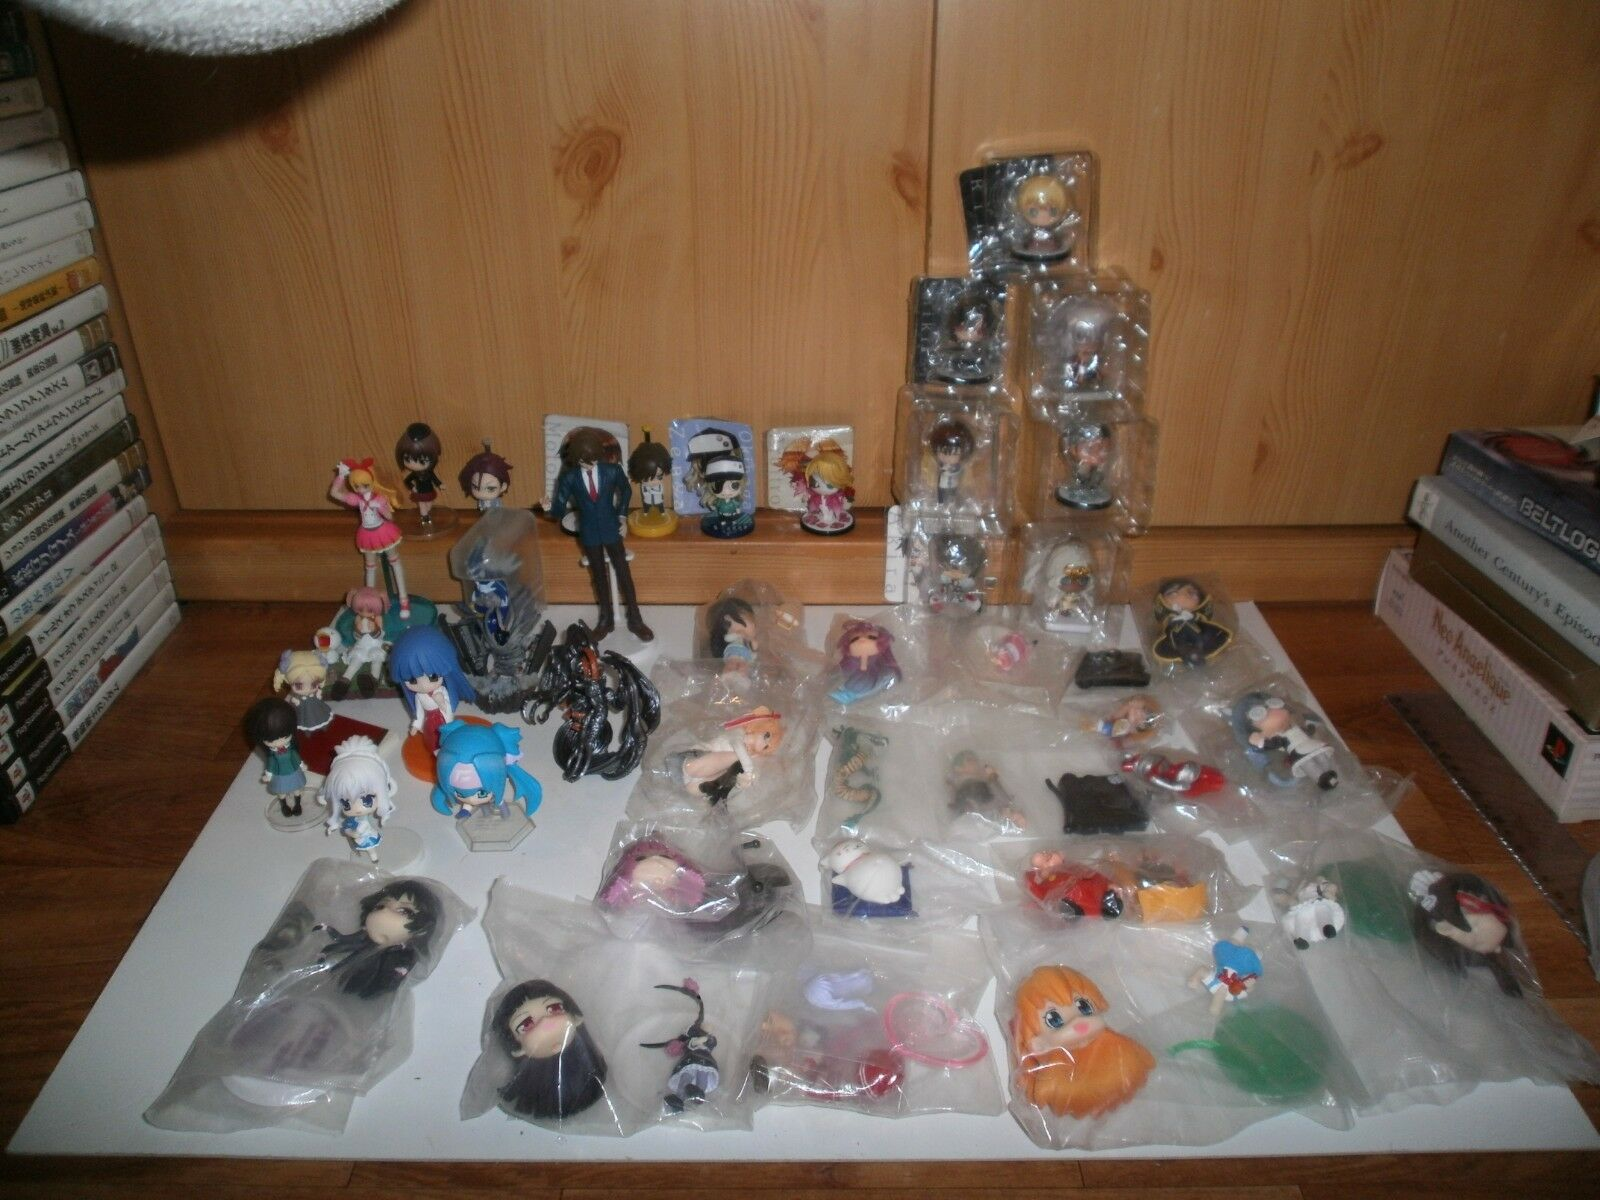 Lot de 40 Figurines (Gashapons, Keychains, etc...) diverses séries(23 neuves) L4